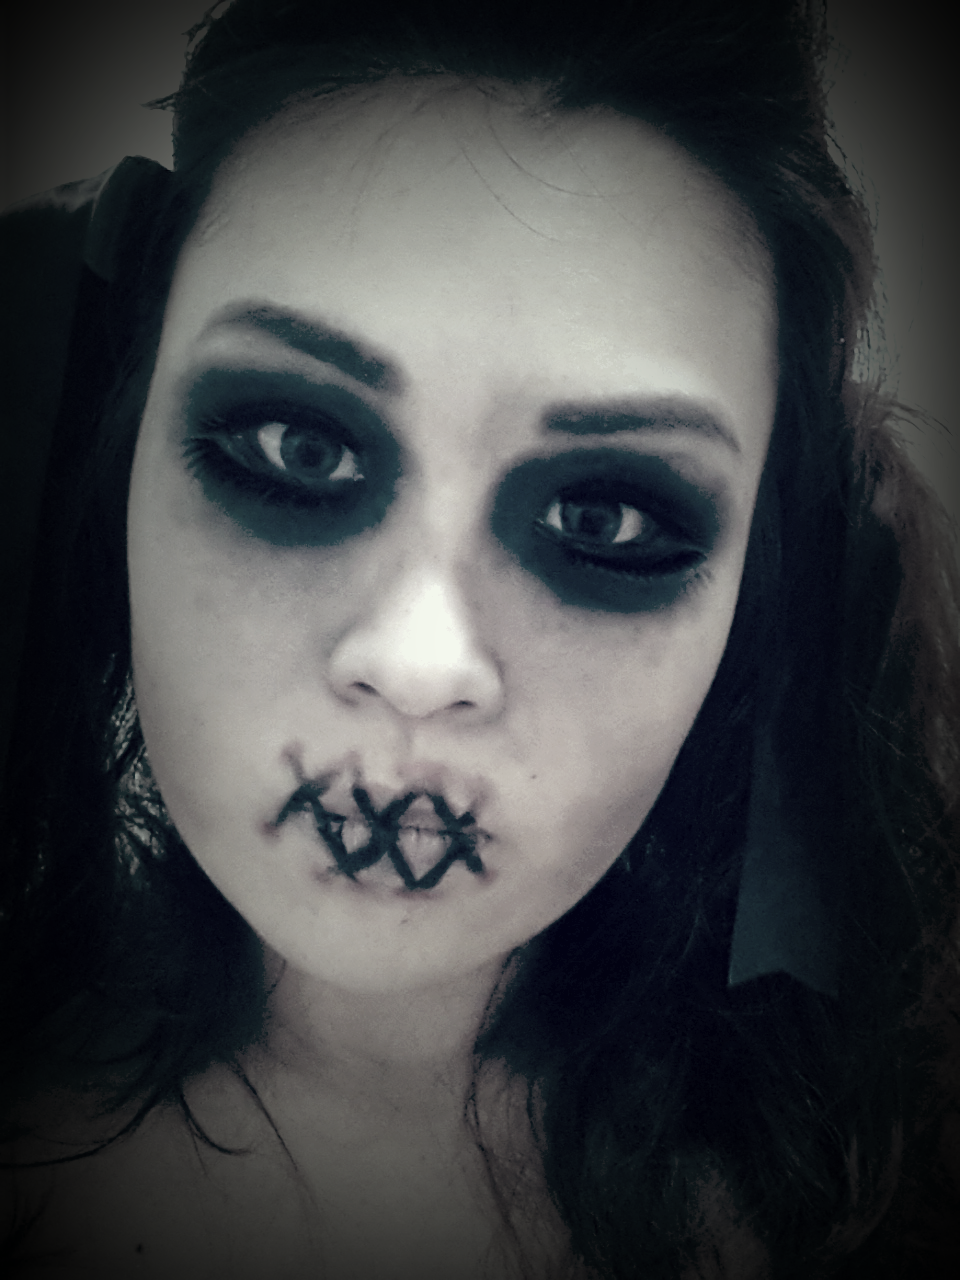 Halloween Makeup Easy Scary.The Makeup Is Actually Super Easy To Do Description From